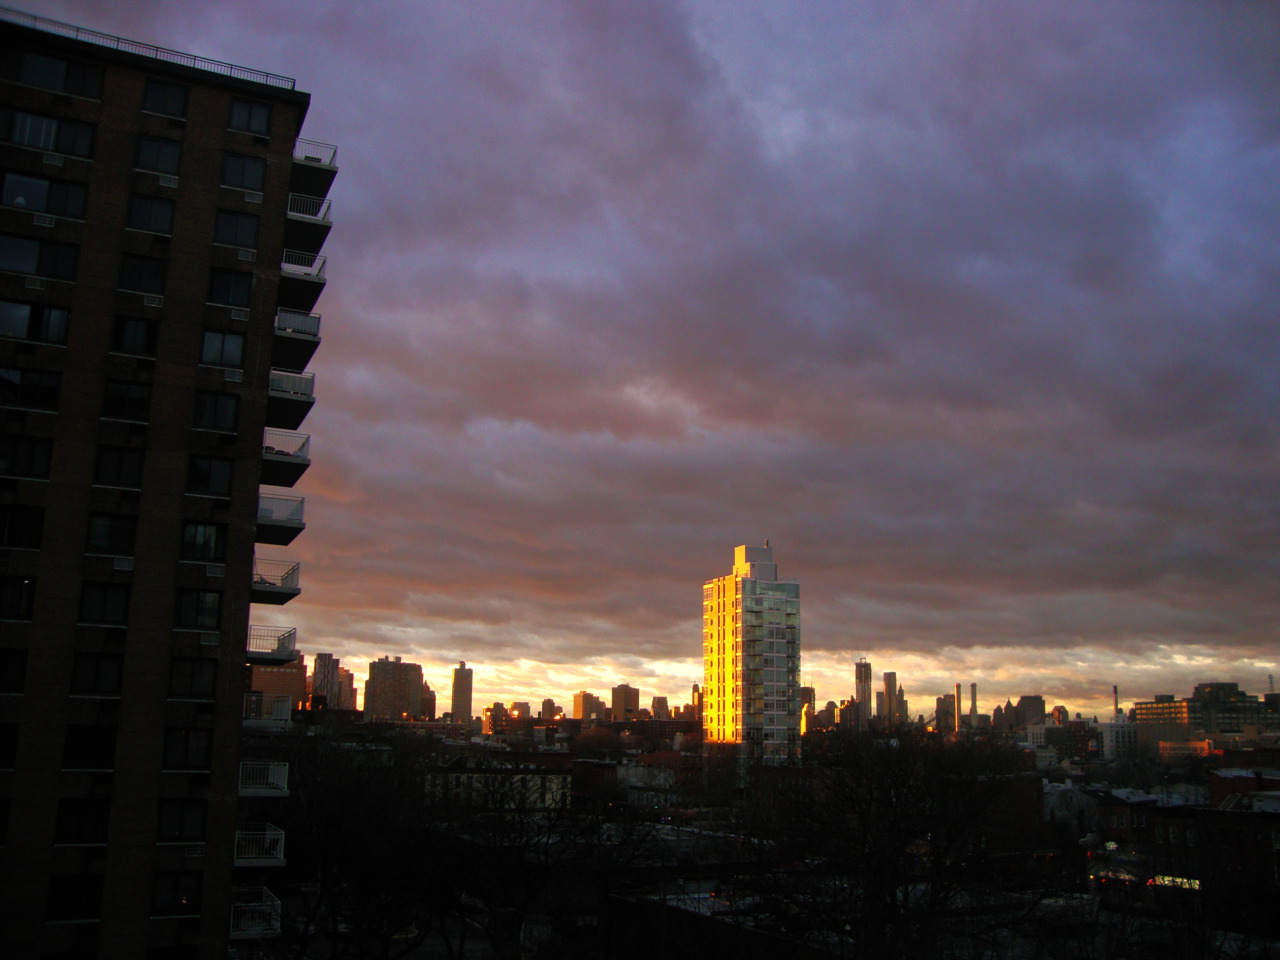 Winter sunset, Brooklyn. Camera: Sony DSC W220.